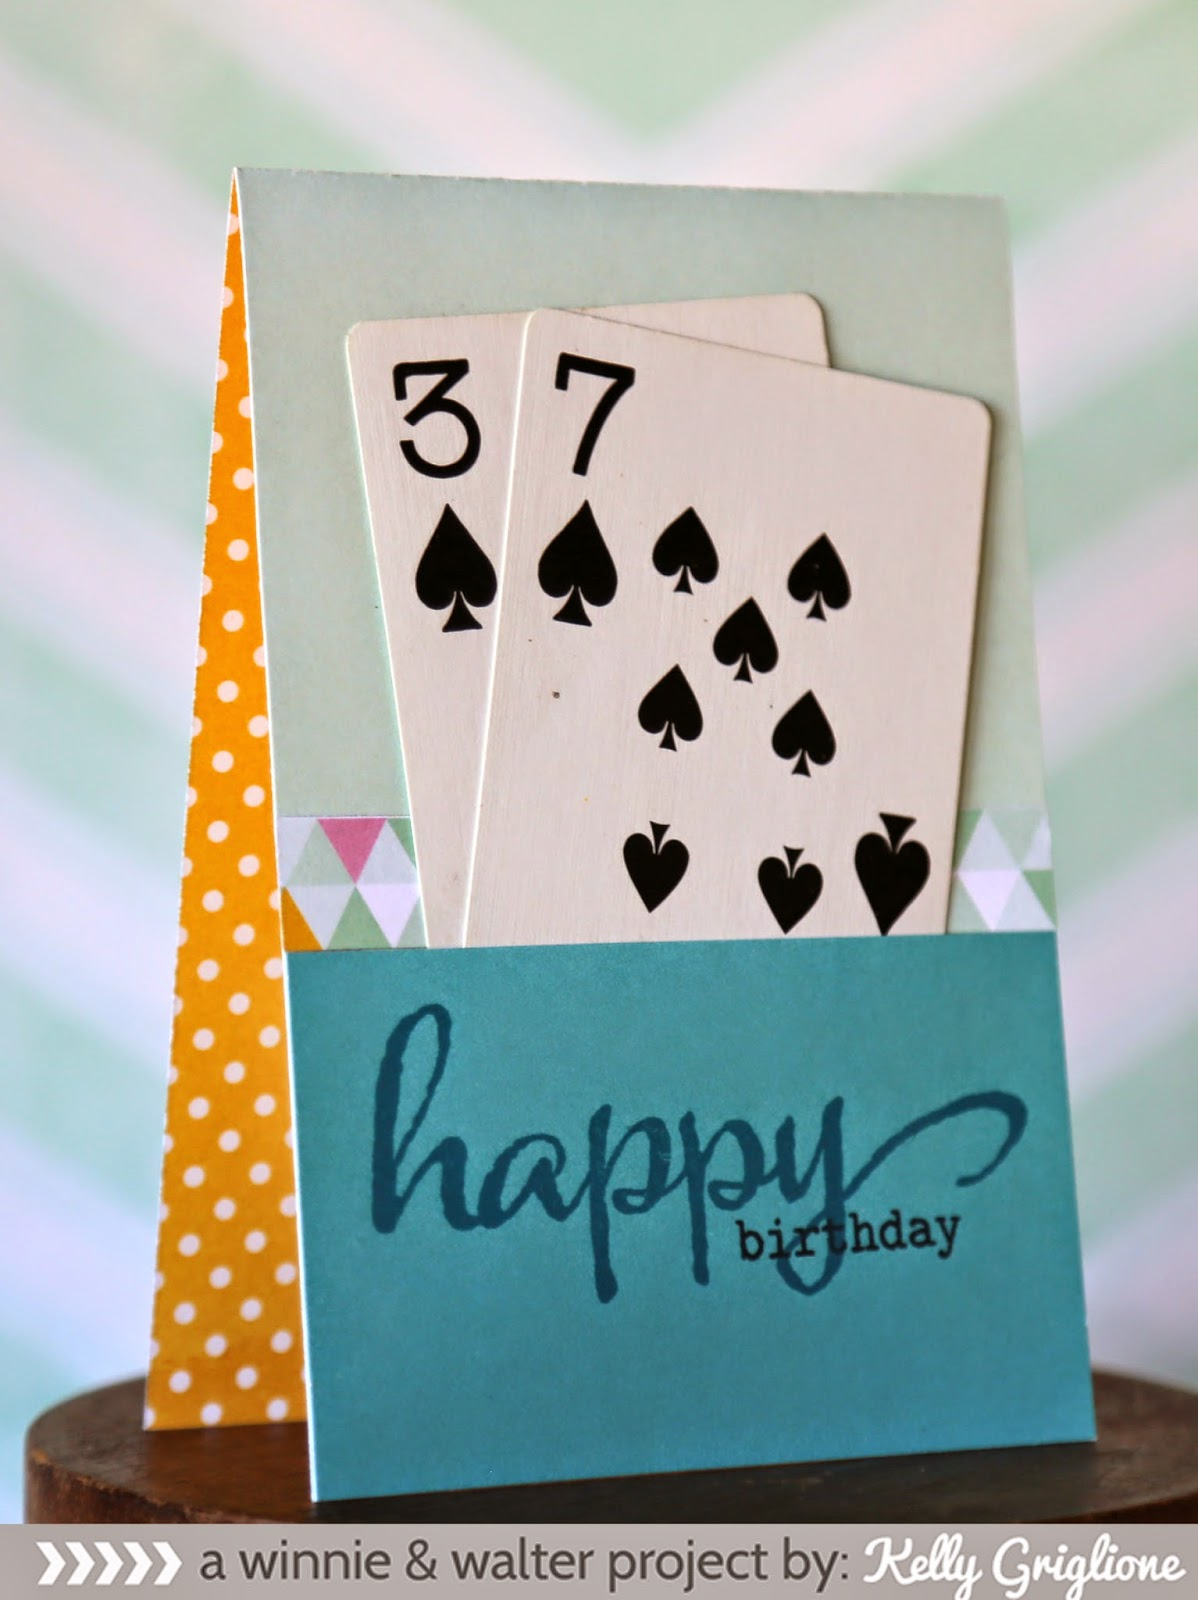 A 37th Birthday Would Be Made With The 3 Card And 7 This Especially Fun To Give Someone Who Loves Playing Games Poker In Vegas